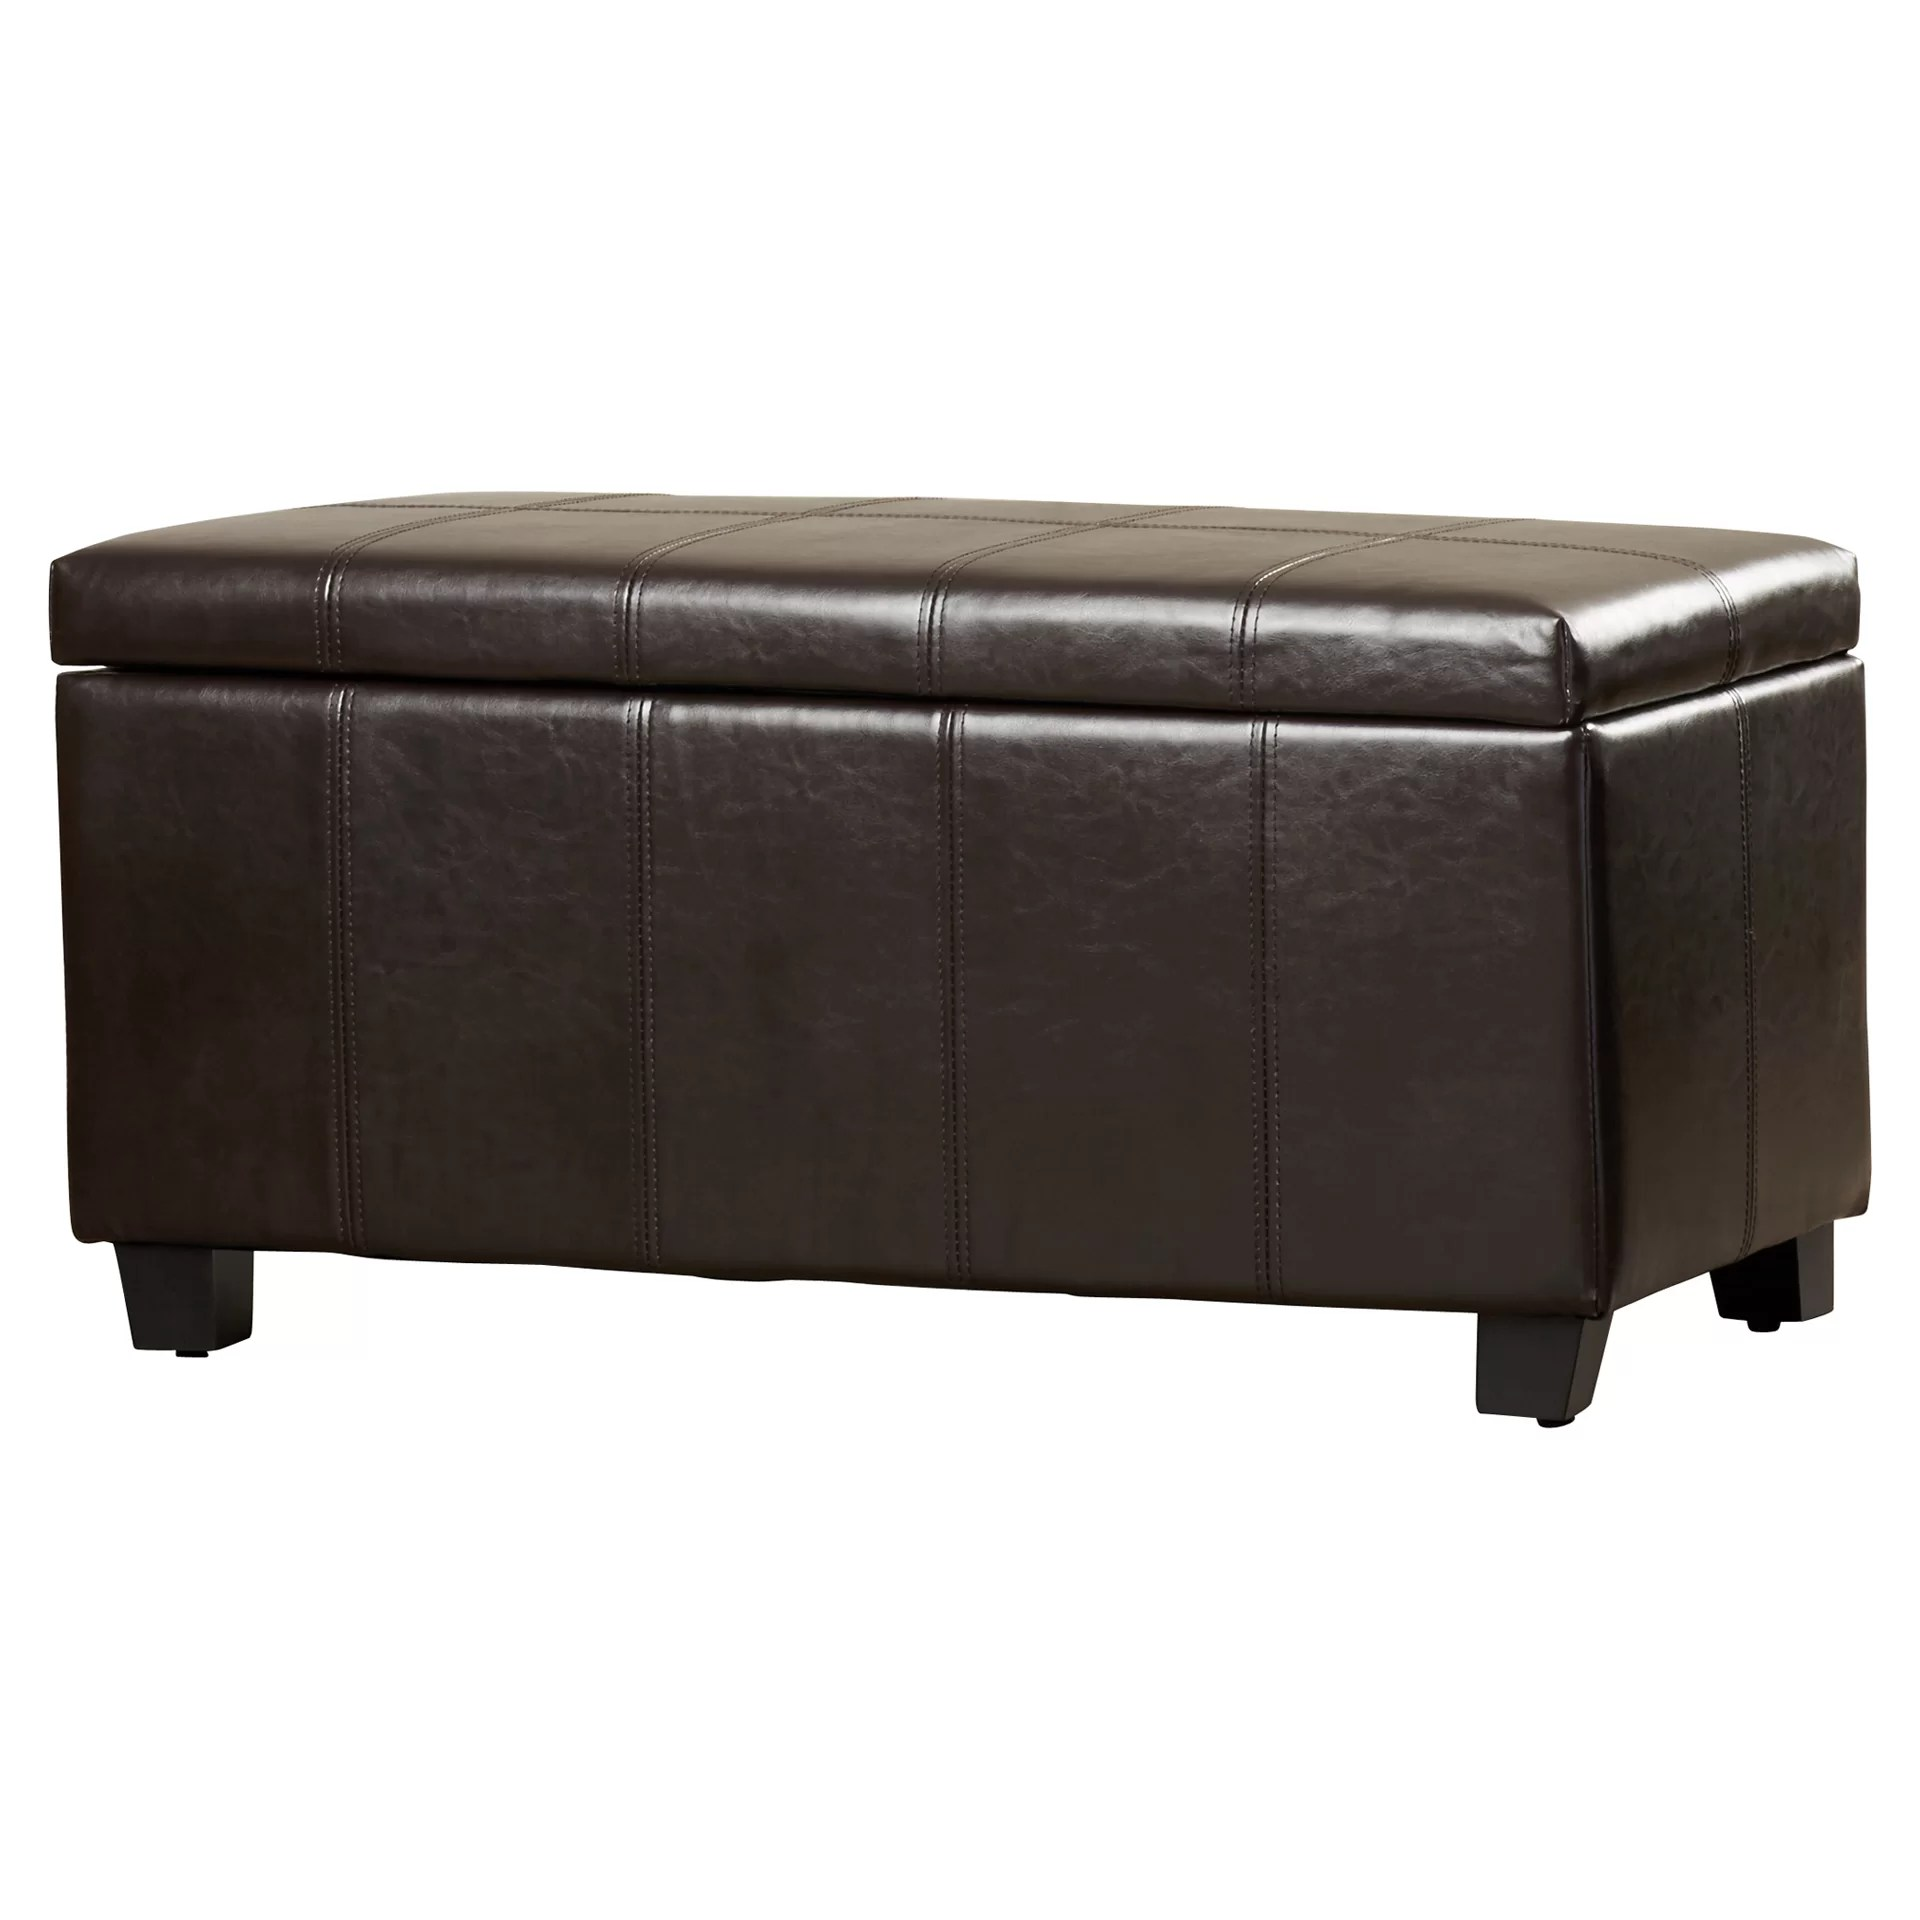 Alcott Hill Hampshire Leather Storage Ottoman & Reviews